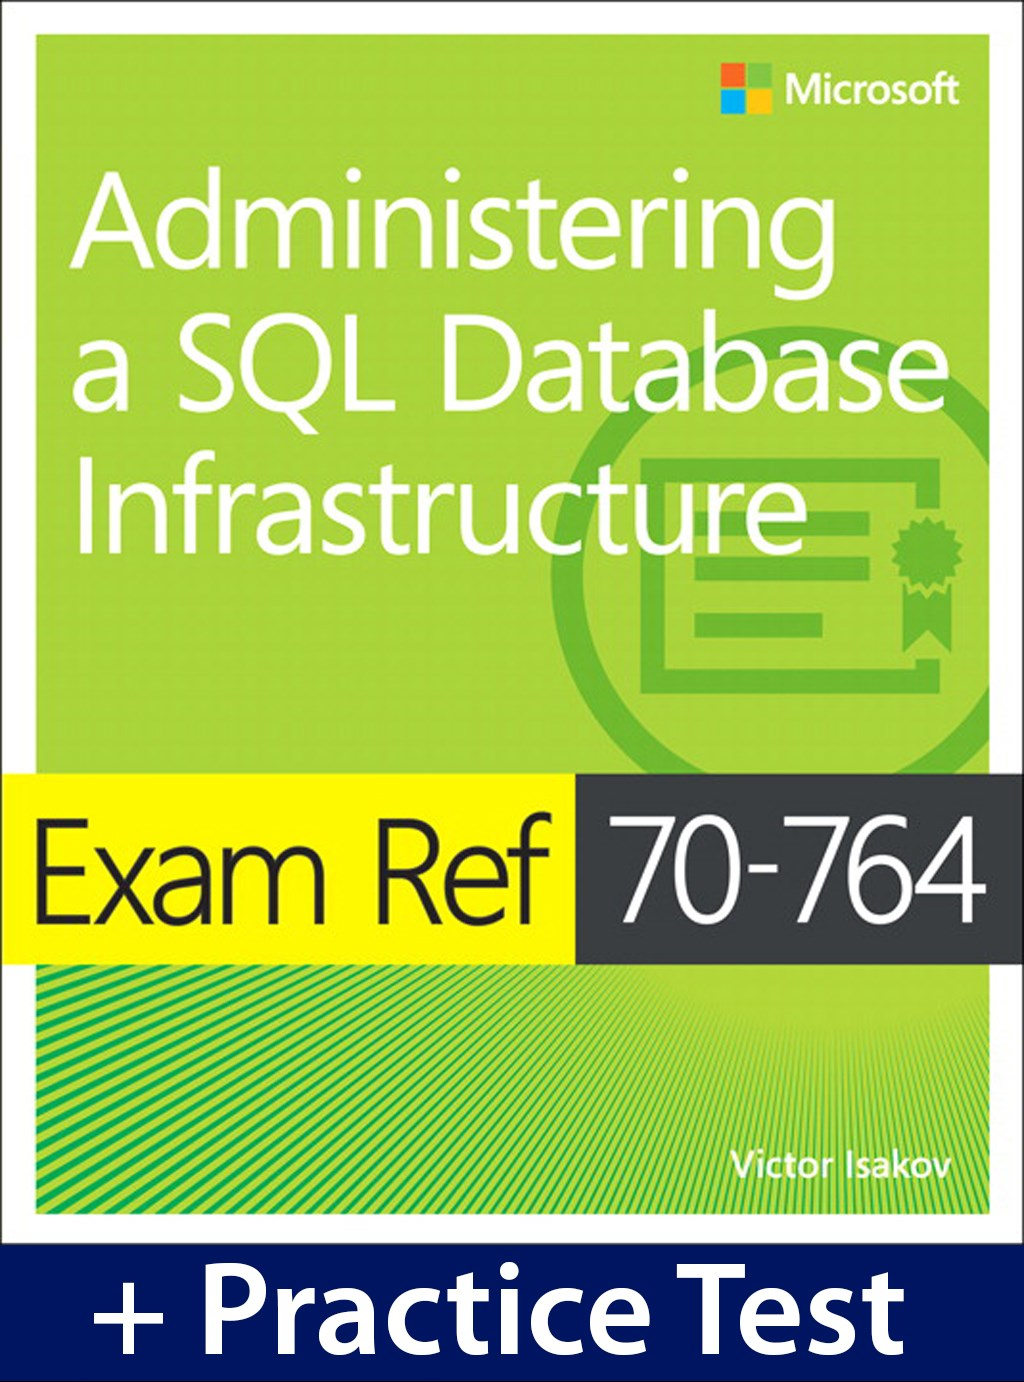 Exam Ref 70-764 Administering a SQL Database Infrastructure with Practice Test